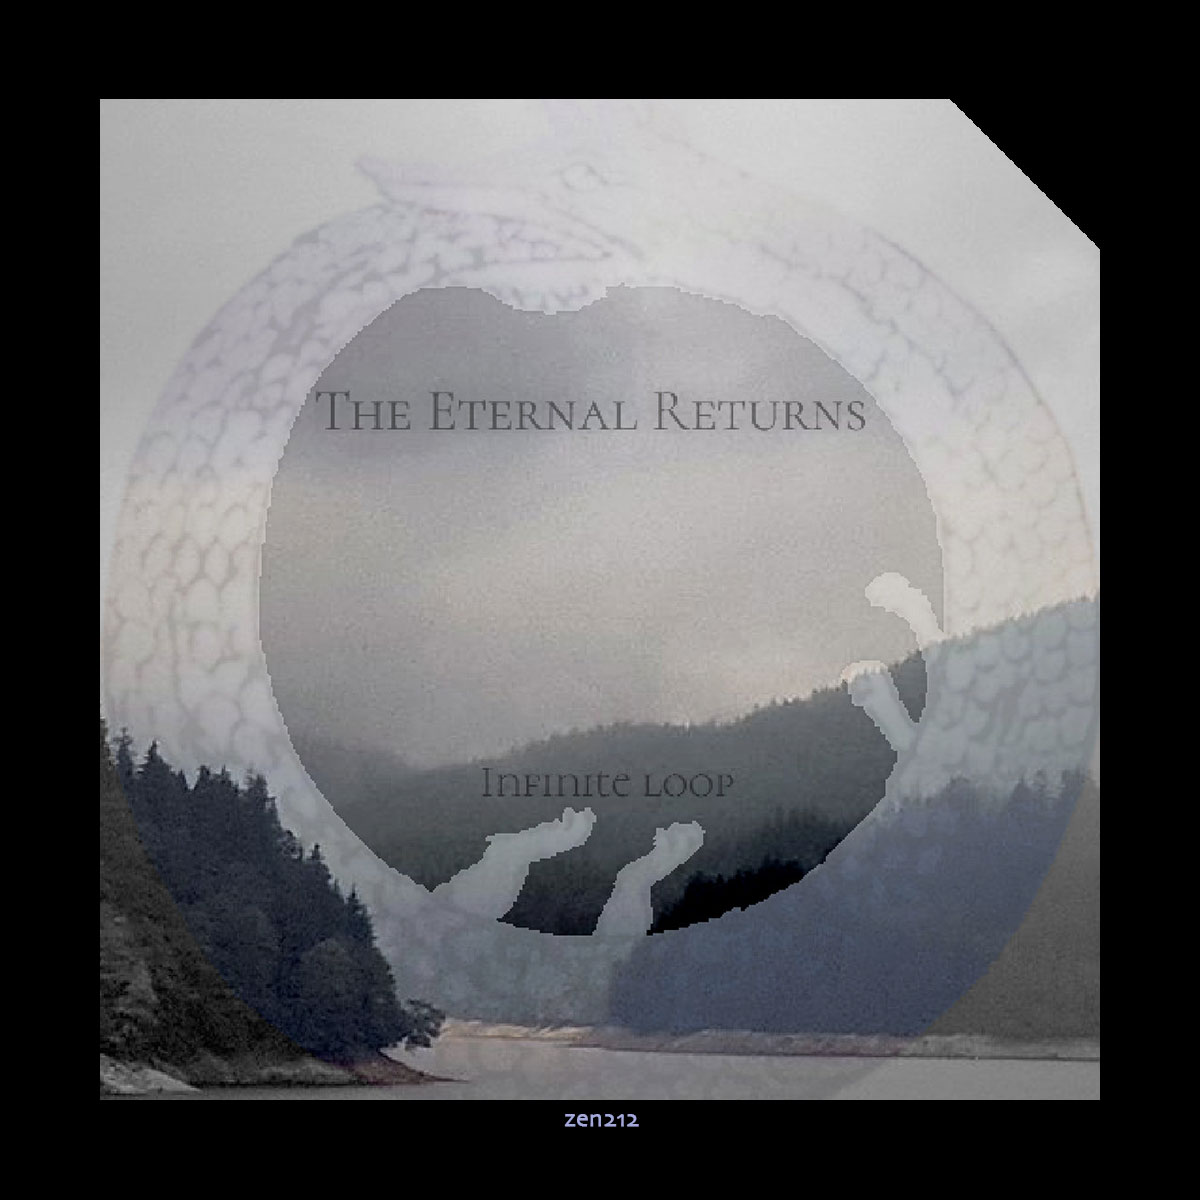 The Eternal Returns – Infinite Loop